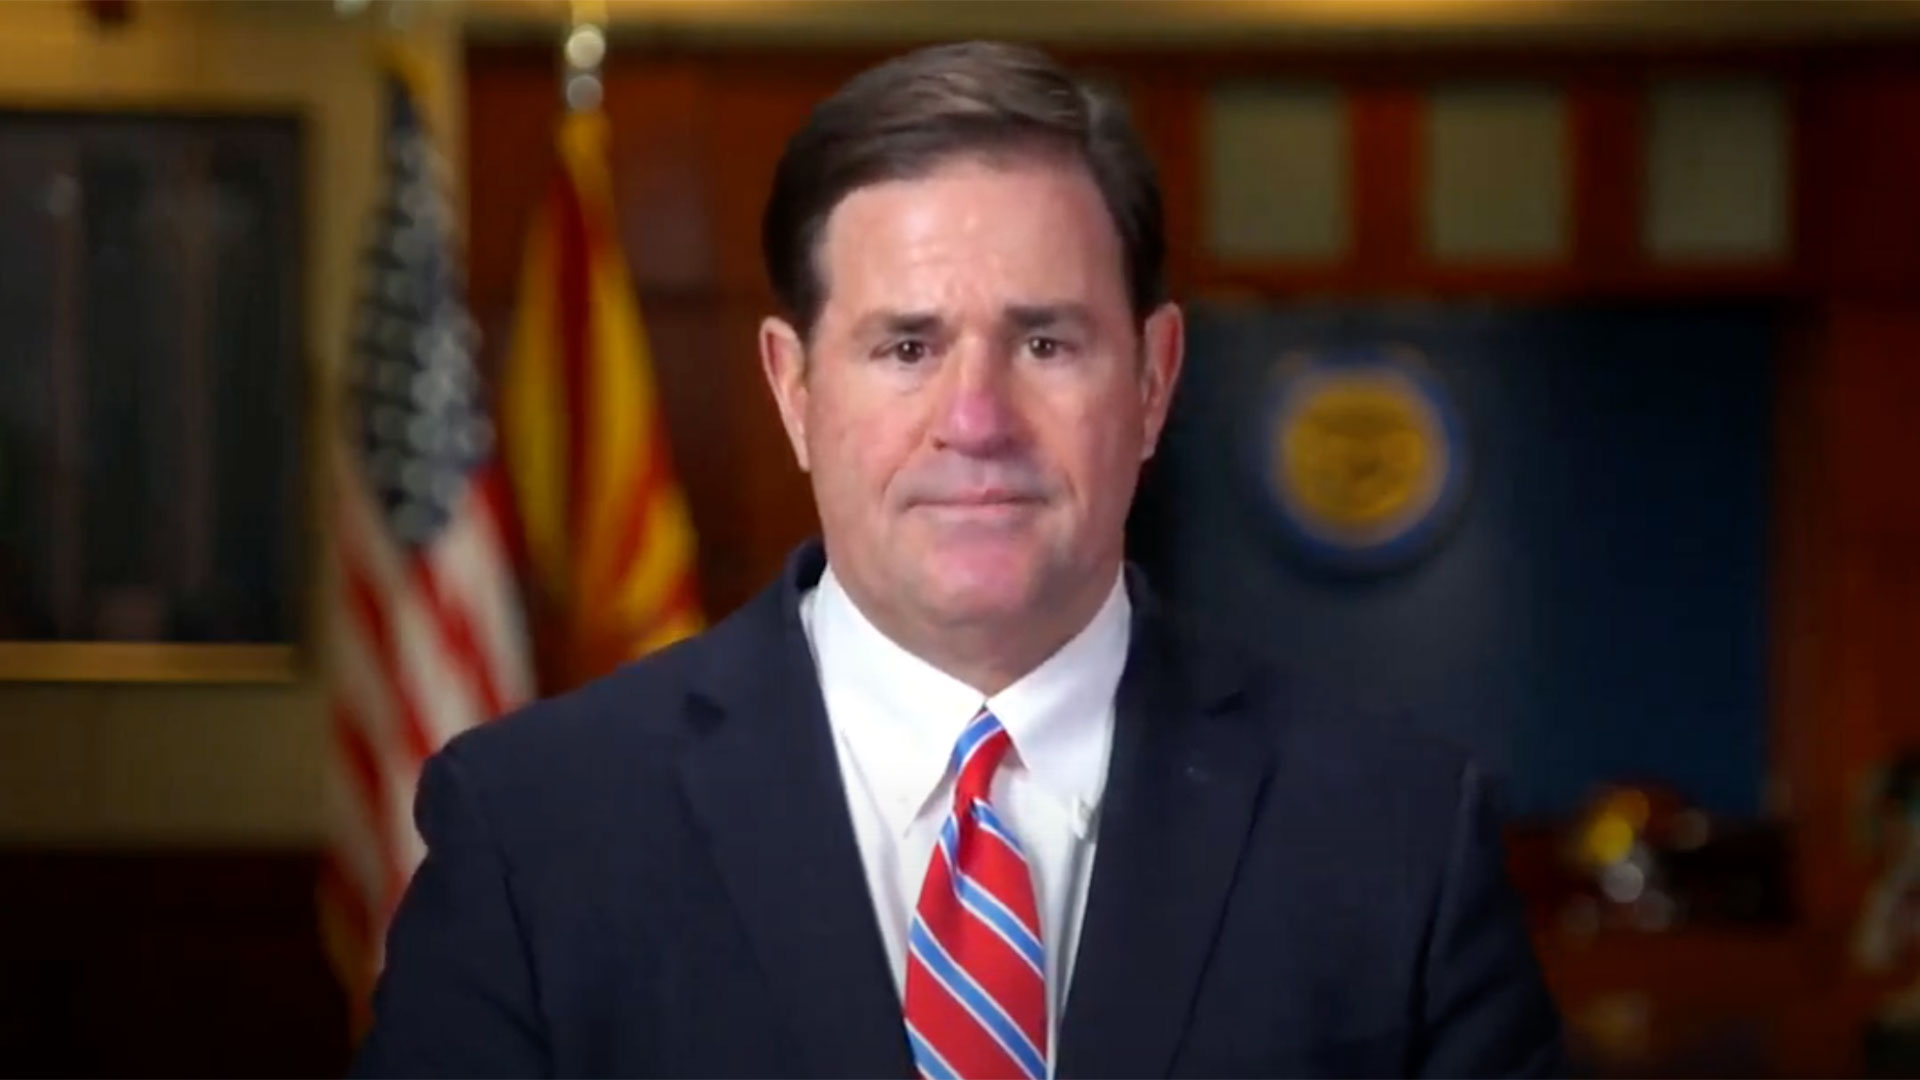 Gov. Doug Ducey delivers the annual State of the State address online due to COVID-19.  Jan. 11, 2021